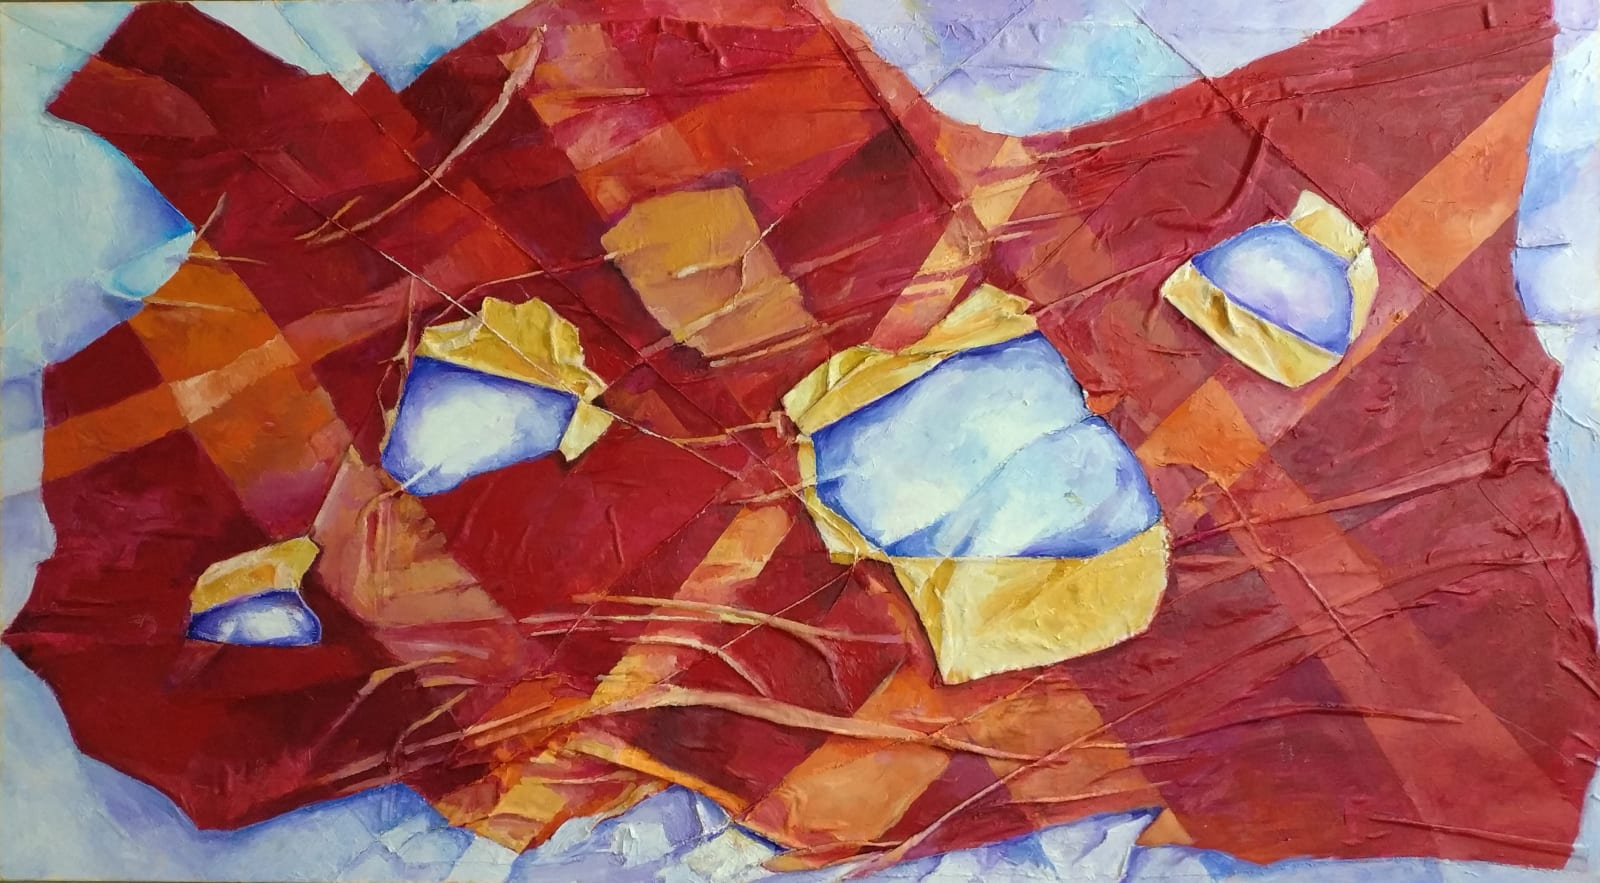 Mohanna Durra, Abstraction, 1980s